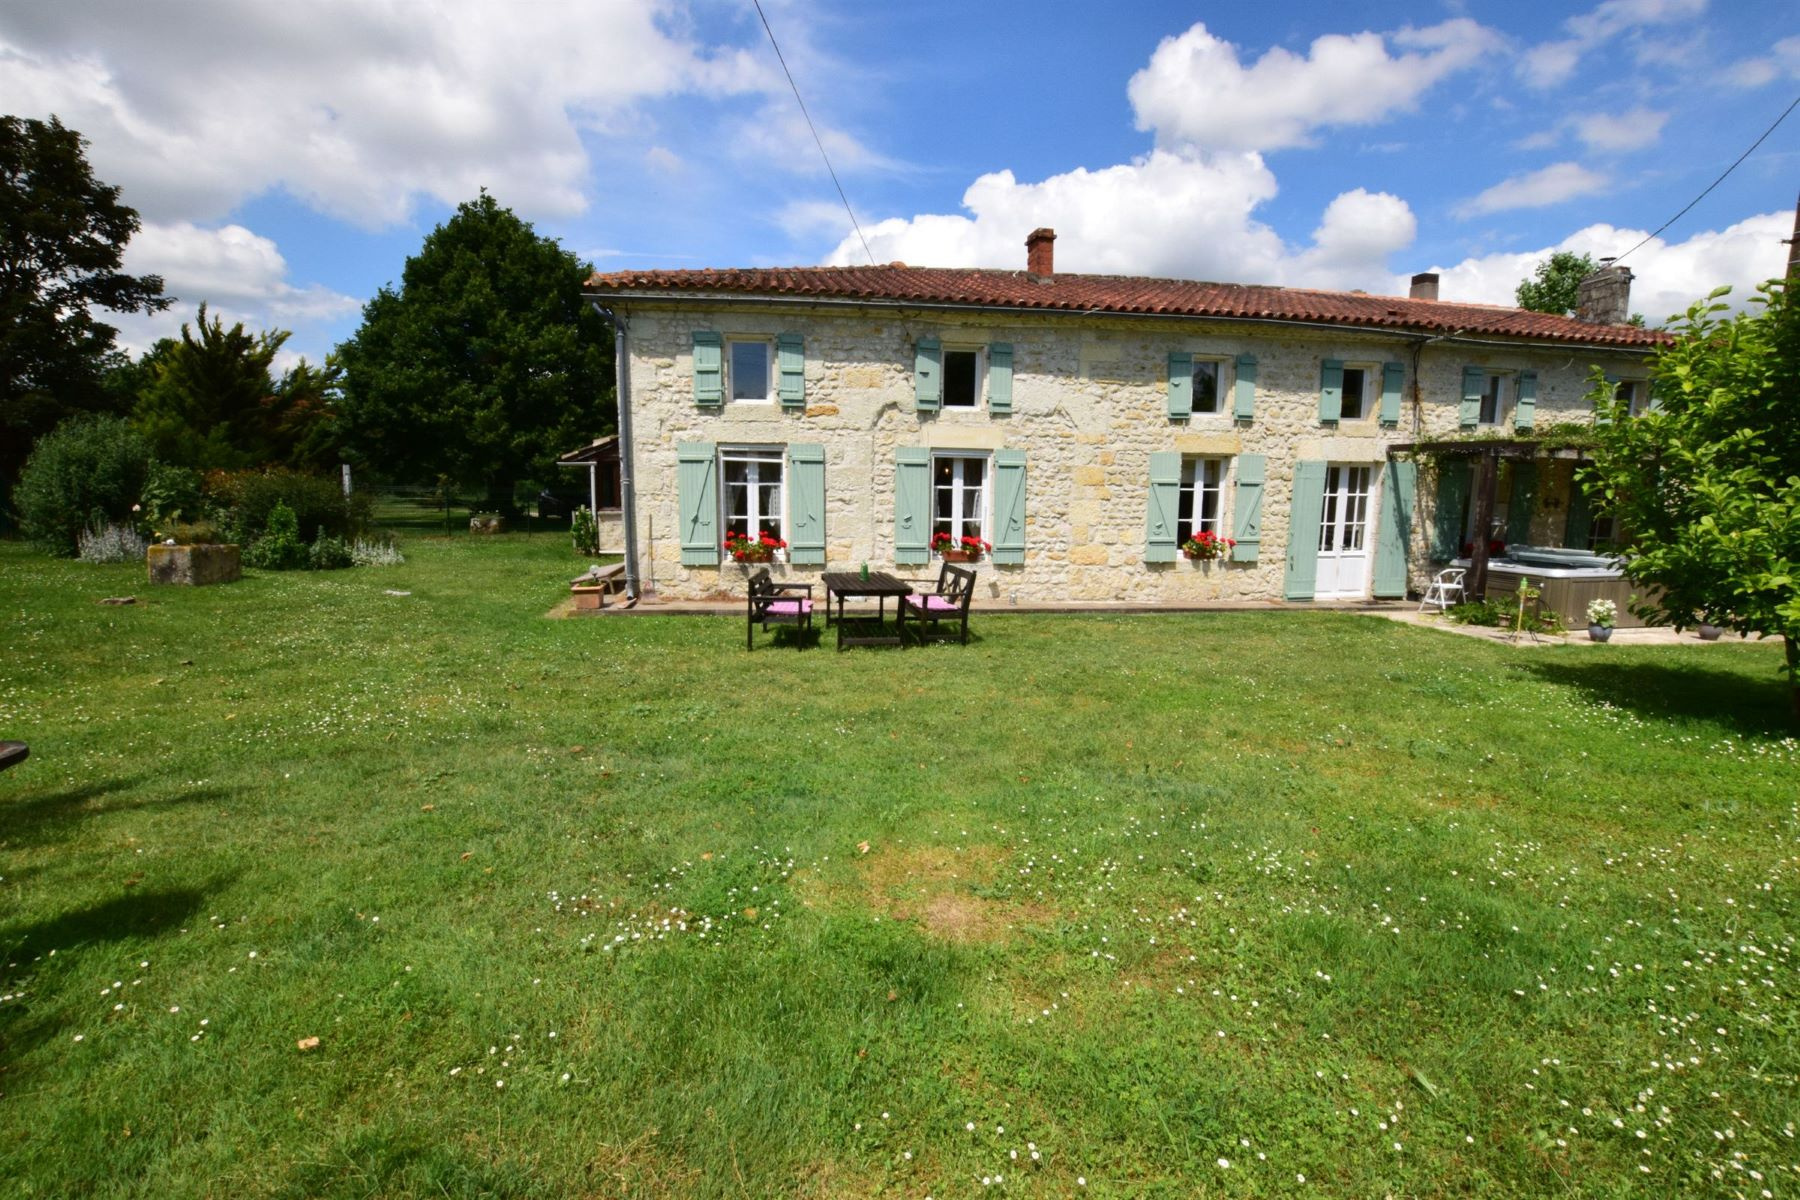 Single Family Home for Sale at Charentaise house with 2 gites Other Poitou-Charentes, Poitou-Charentes, 17240 France